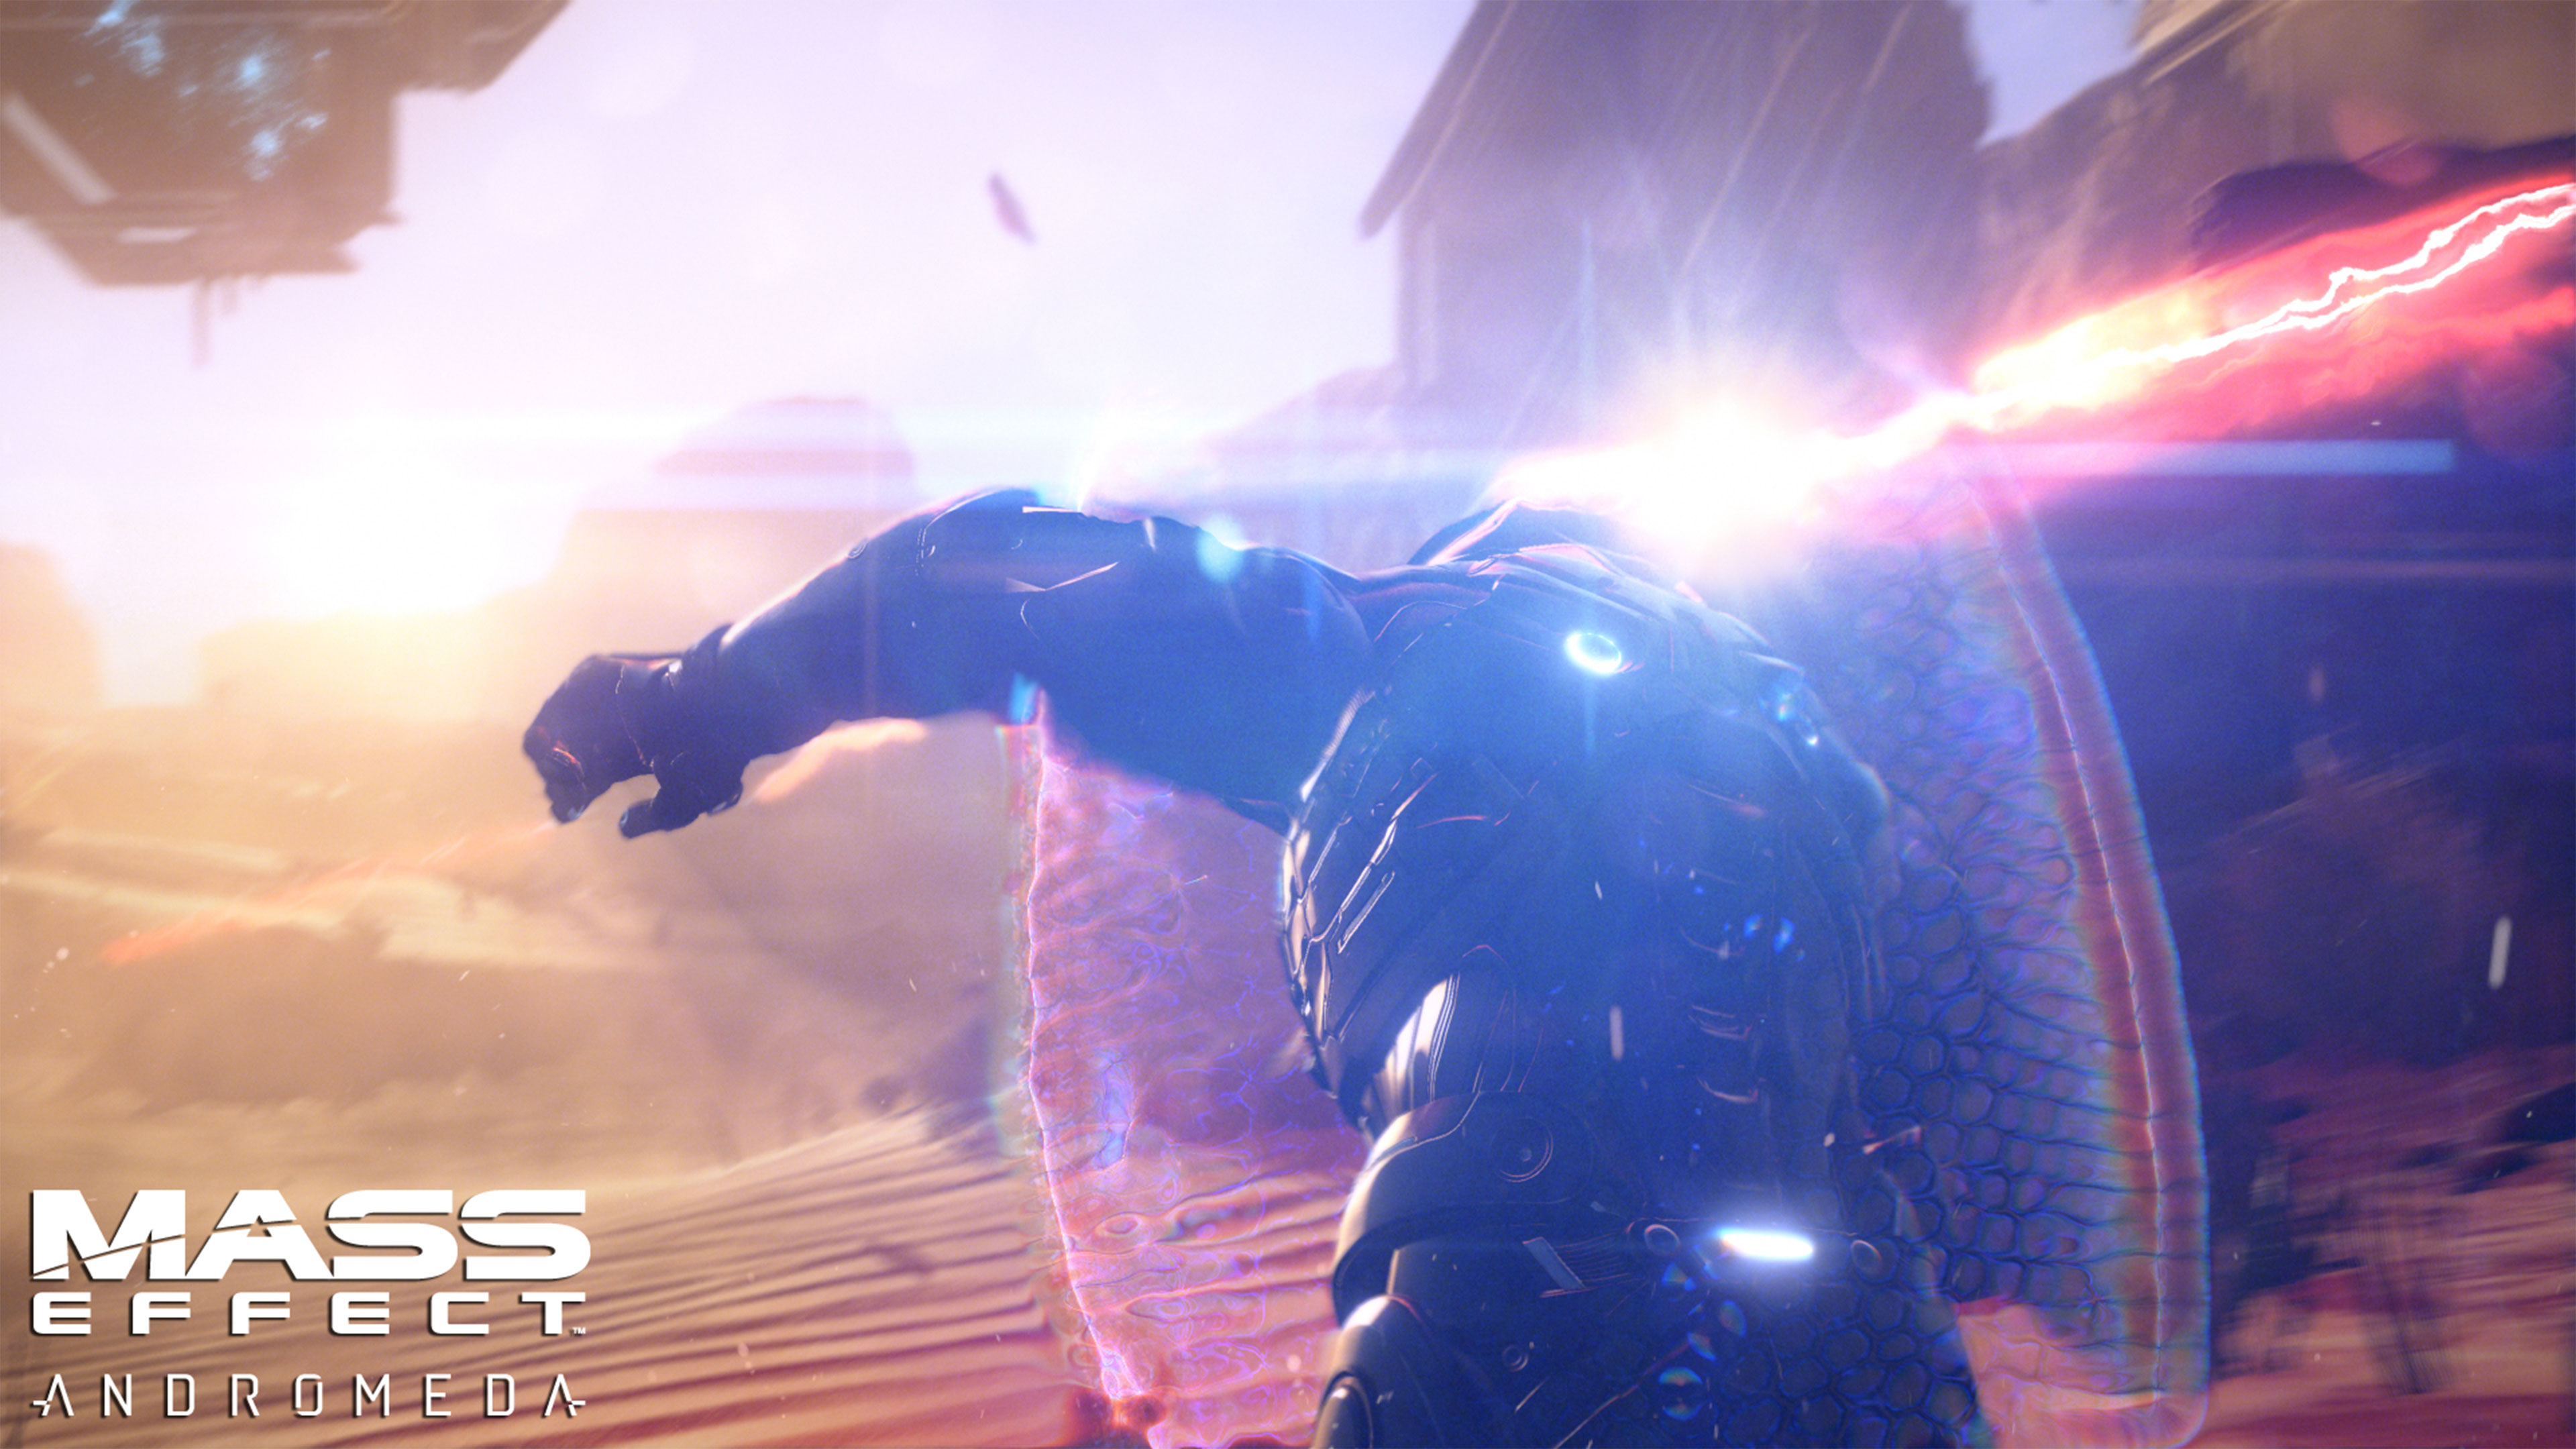 Light Effect Hd Wallpaper Background Images: Mass Effect Andromeda Wallpapers In Ultra HD